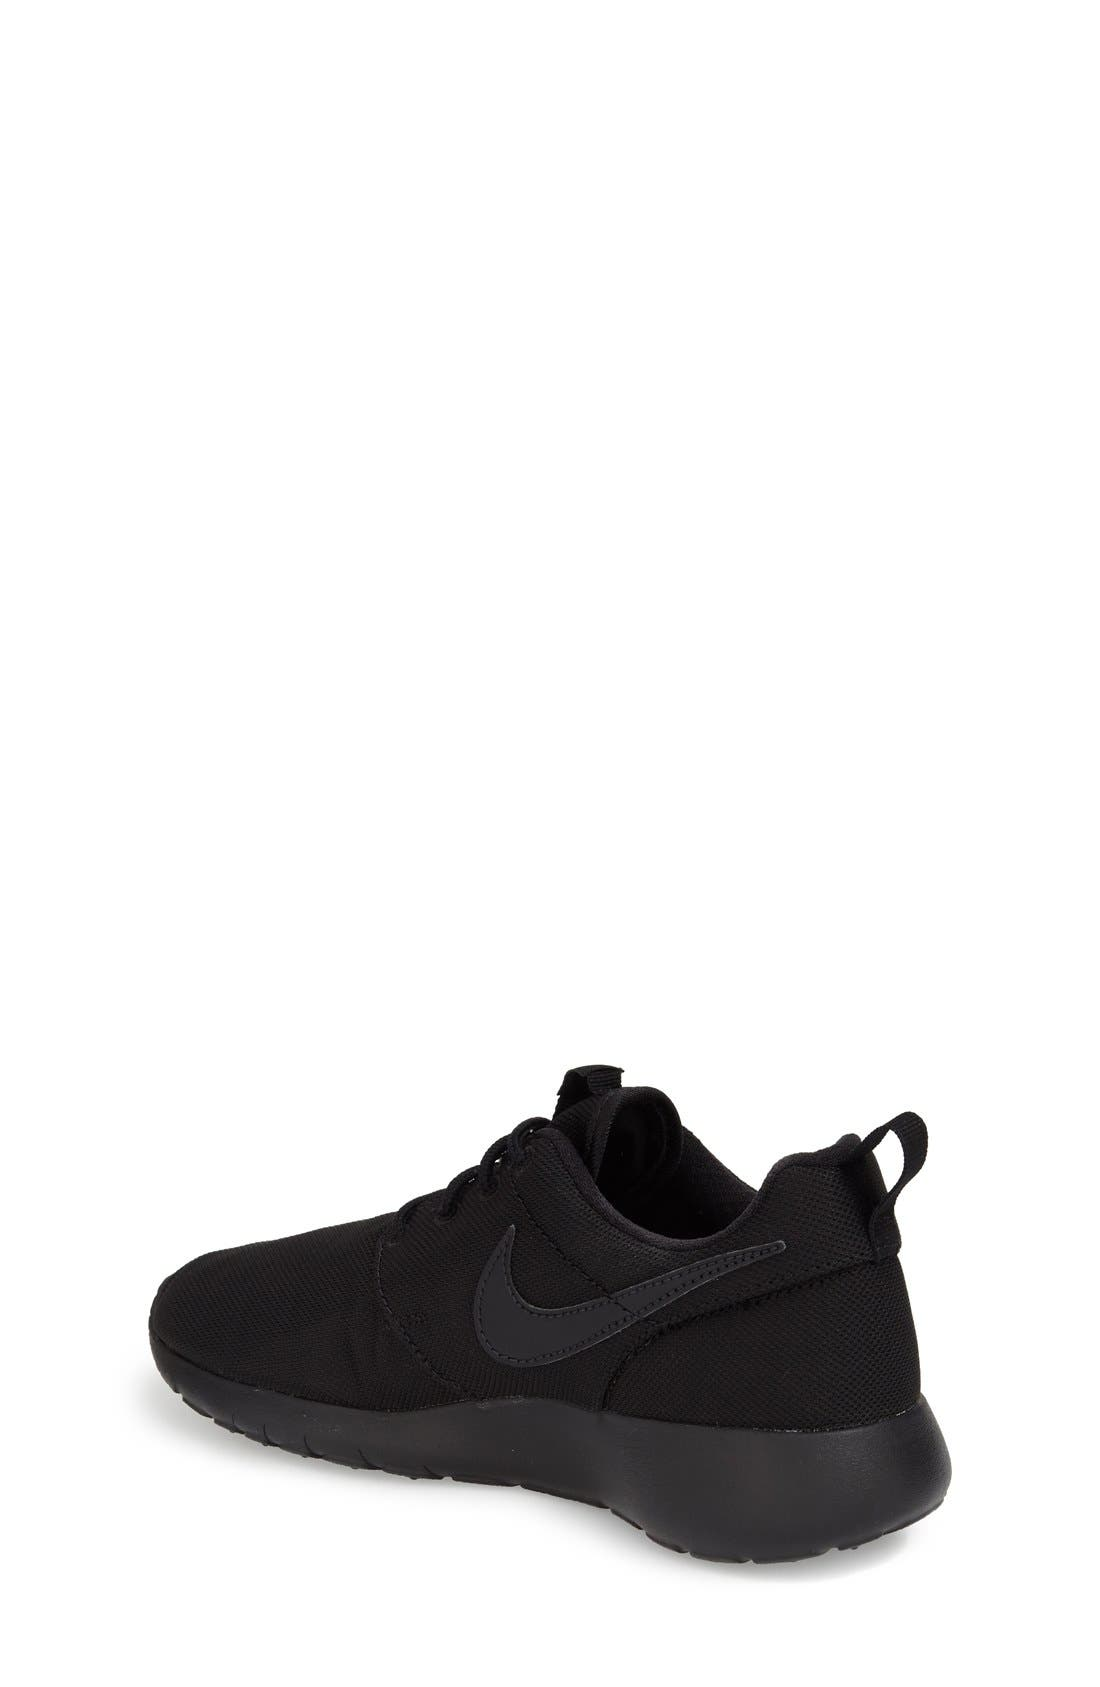 'Roshe Run' Sneaker,                             Alternate thumbnail 110, color,